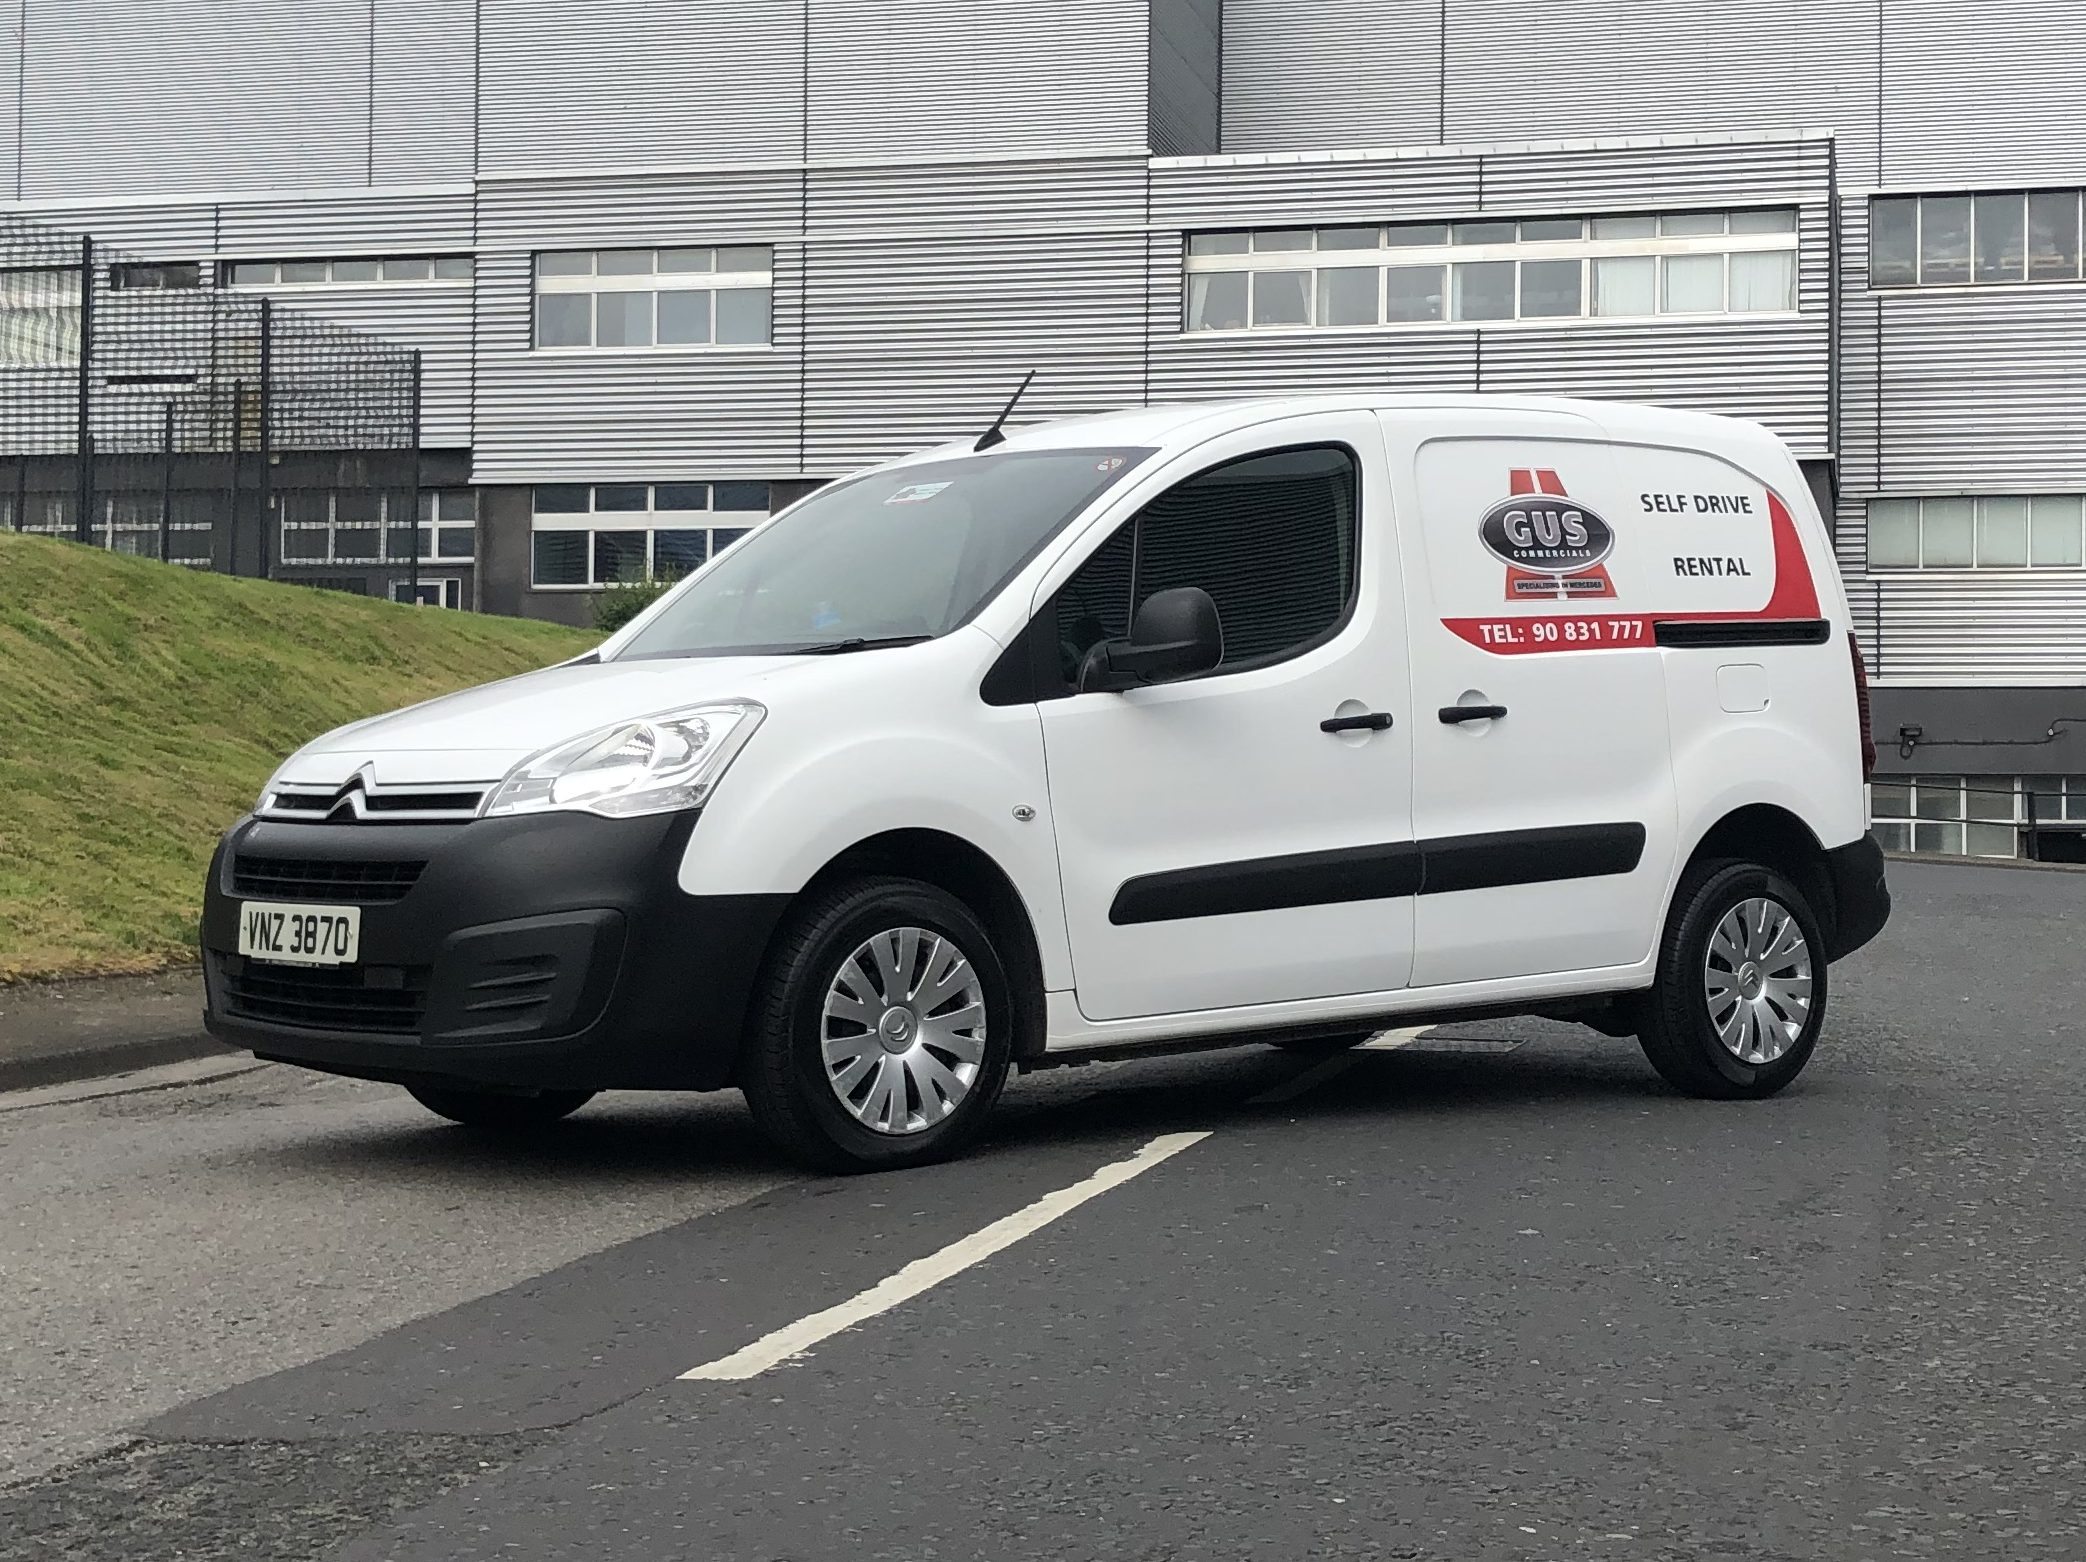 Citroen Berlingo car derived van available for hire from Gus Commercials